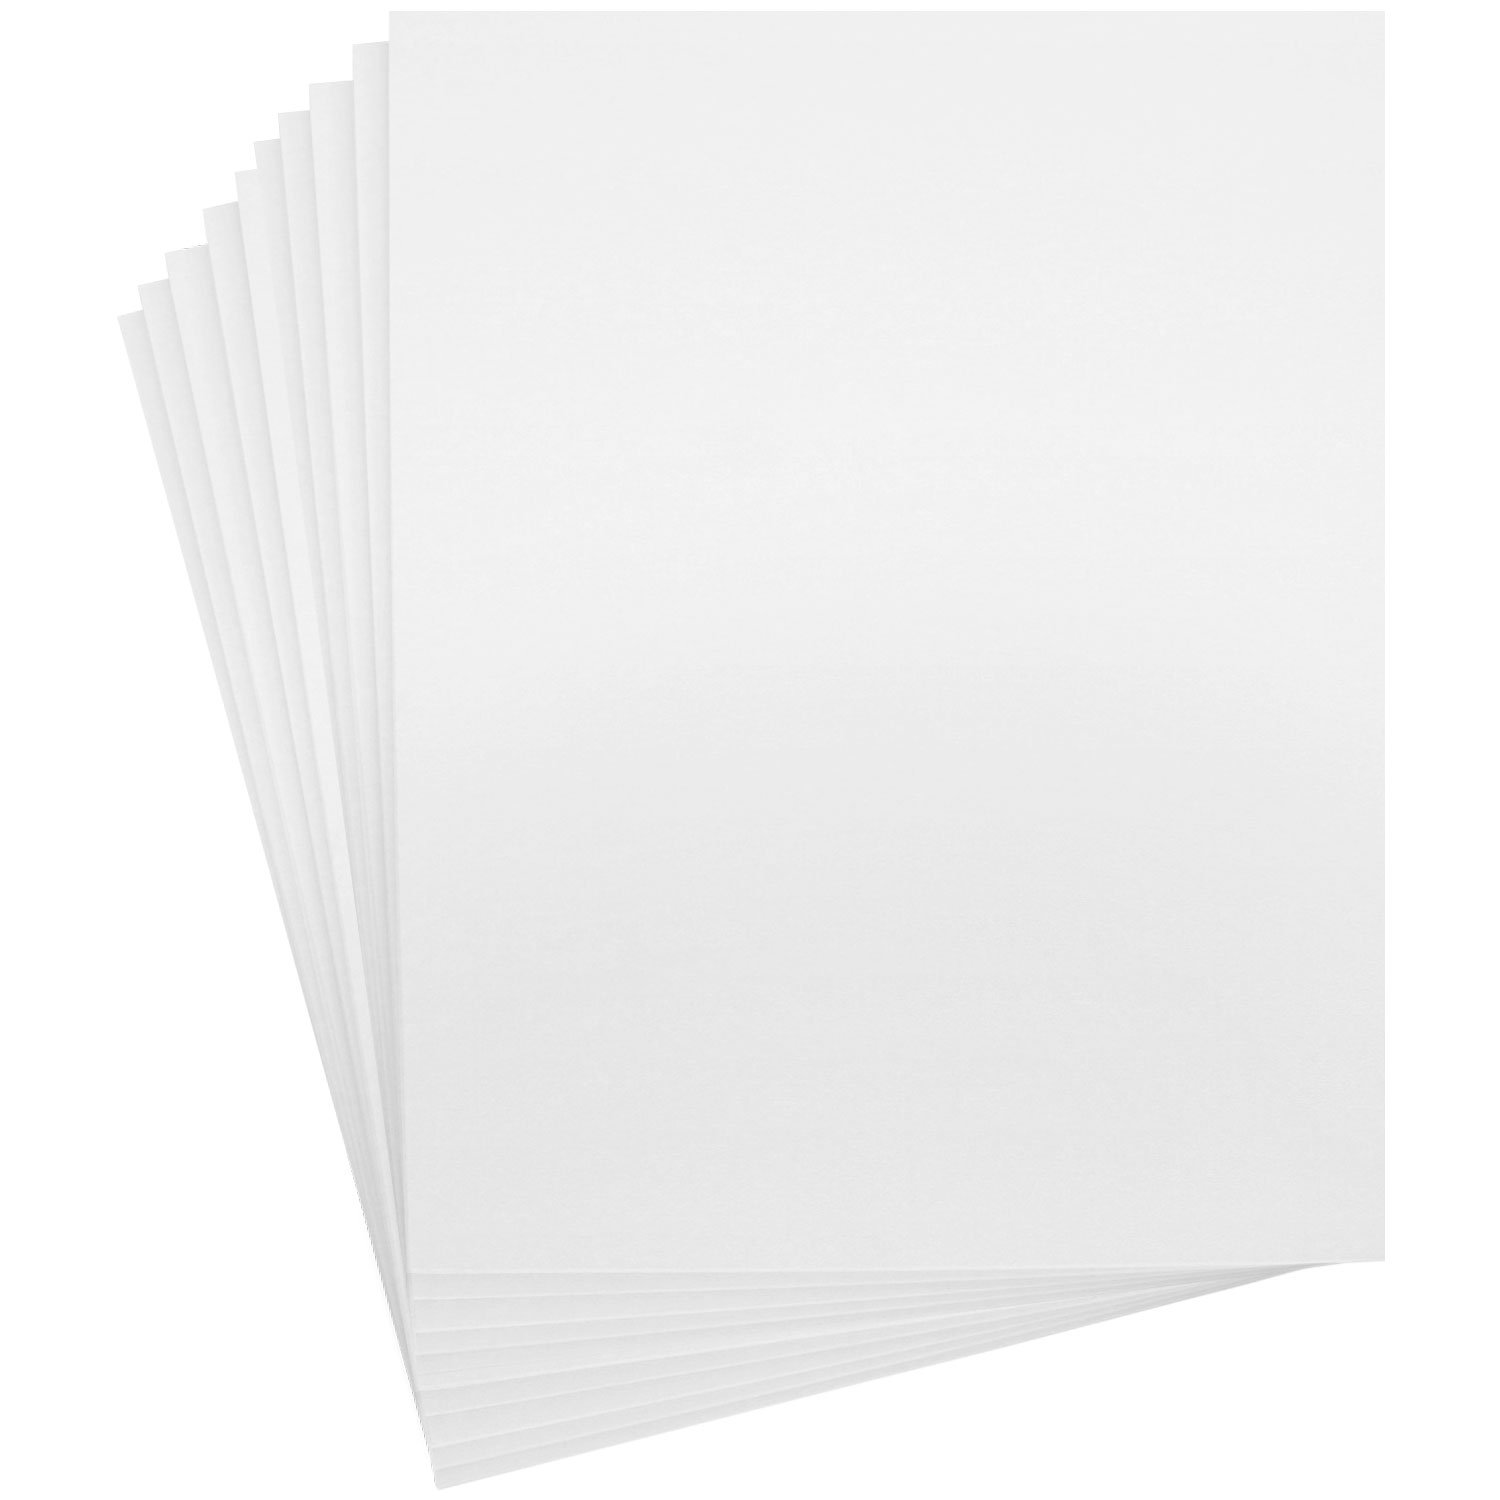 Includes a Pack of 25 White Core Bevel Cut Mattes for 11x14 Photos US Art Supply Art Mats Acid-Free Pre-Cut 16X20 White Picture Mat Matte Sets Pack of 25 Backers /& 25 Clear Sleeve Bags